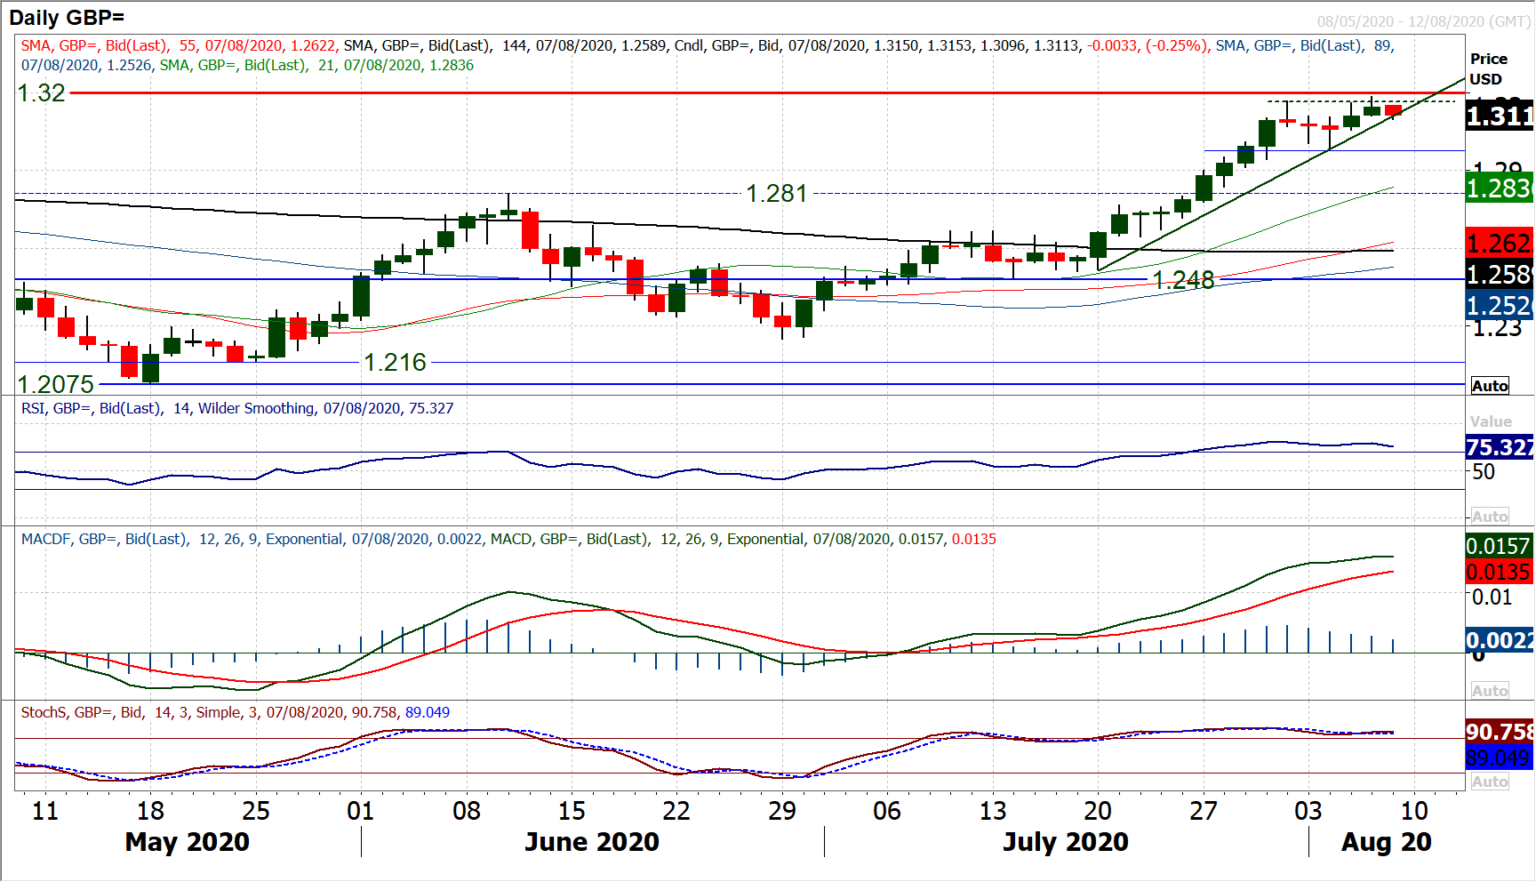 GBP-Daily Chart